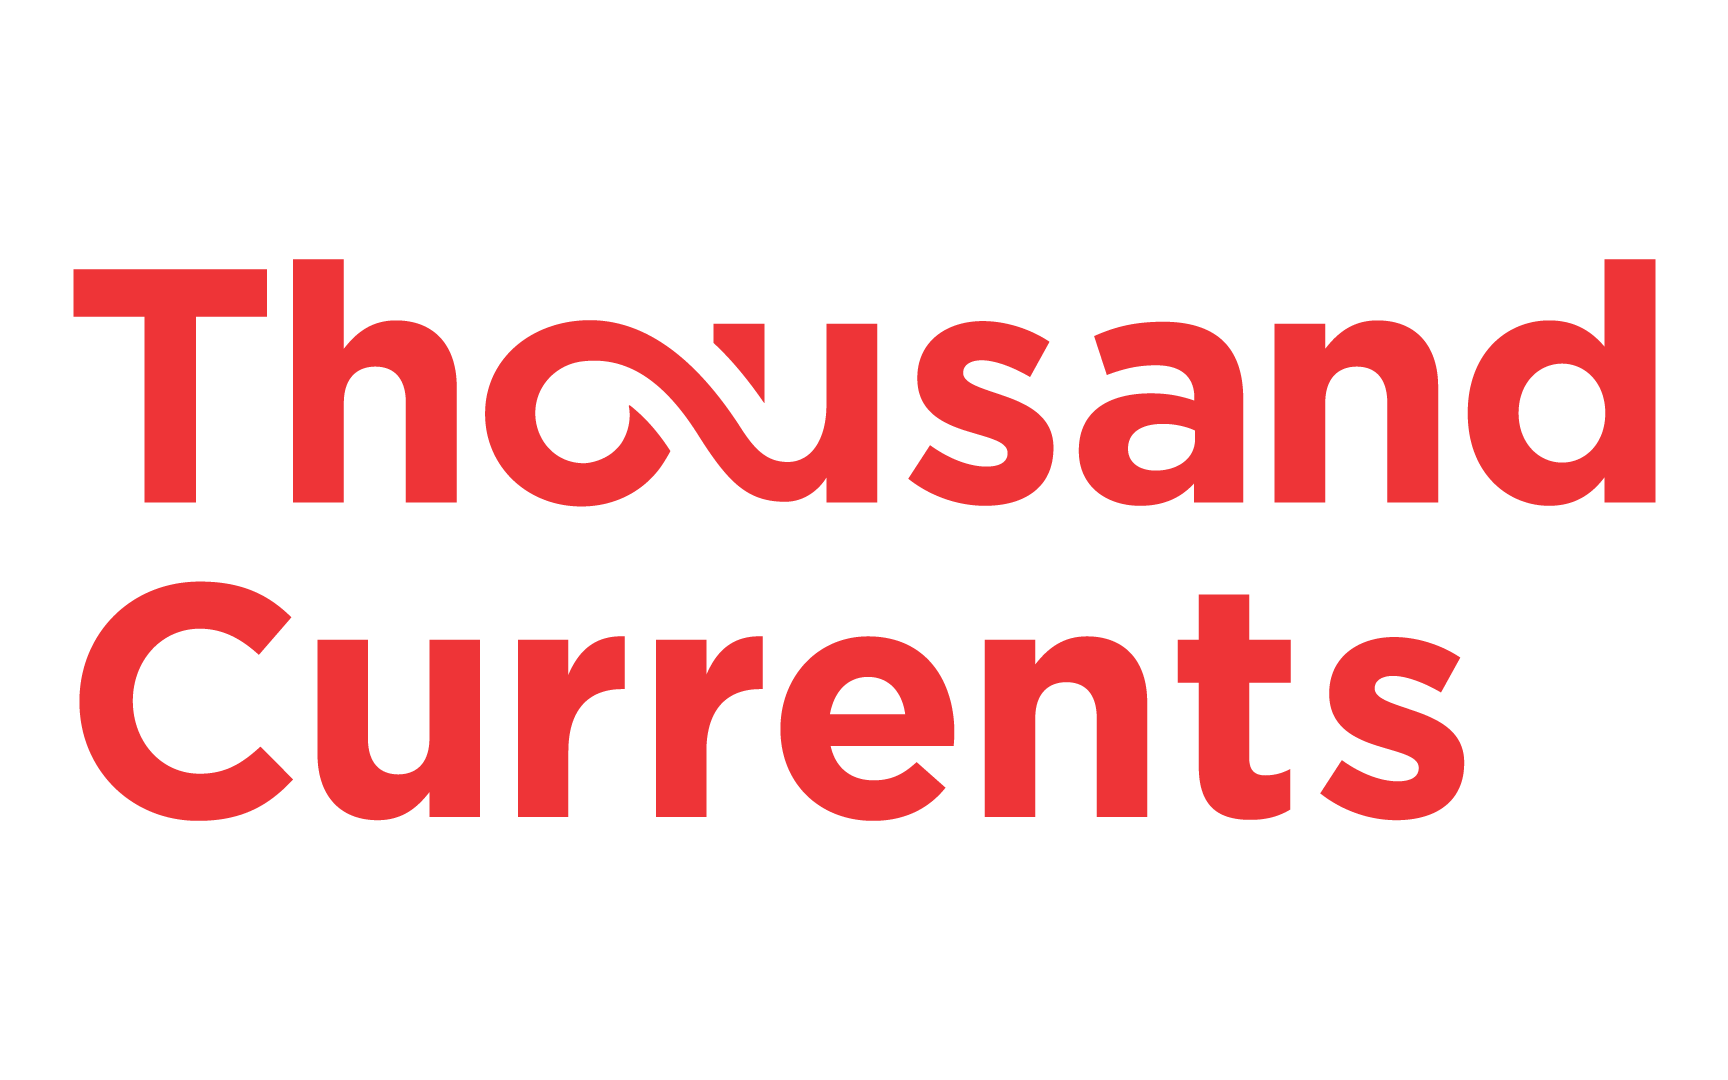 thousand-currents-logo-24x15 (1).png